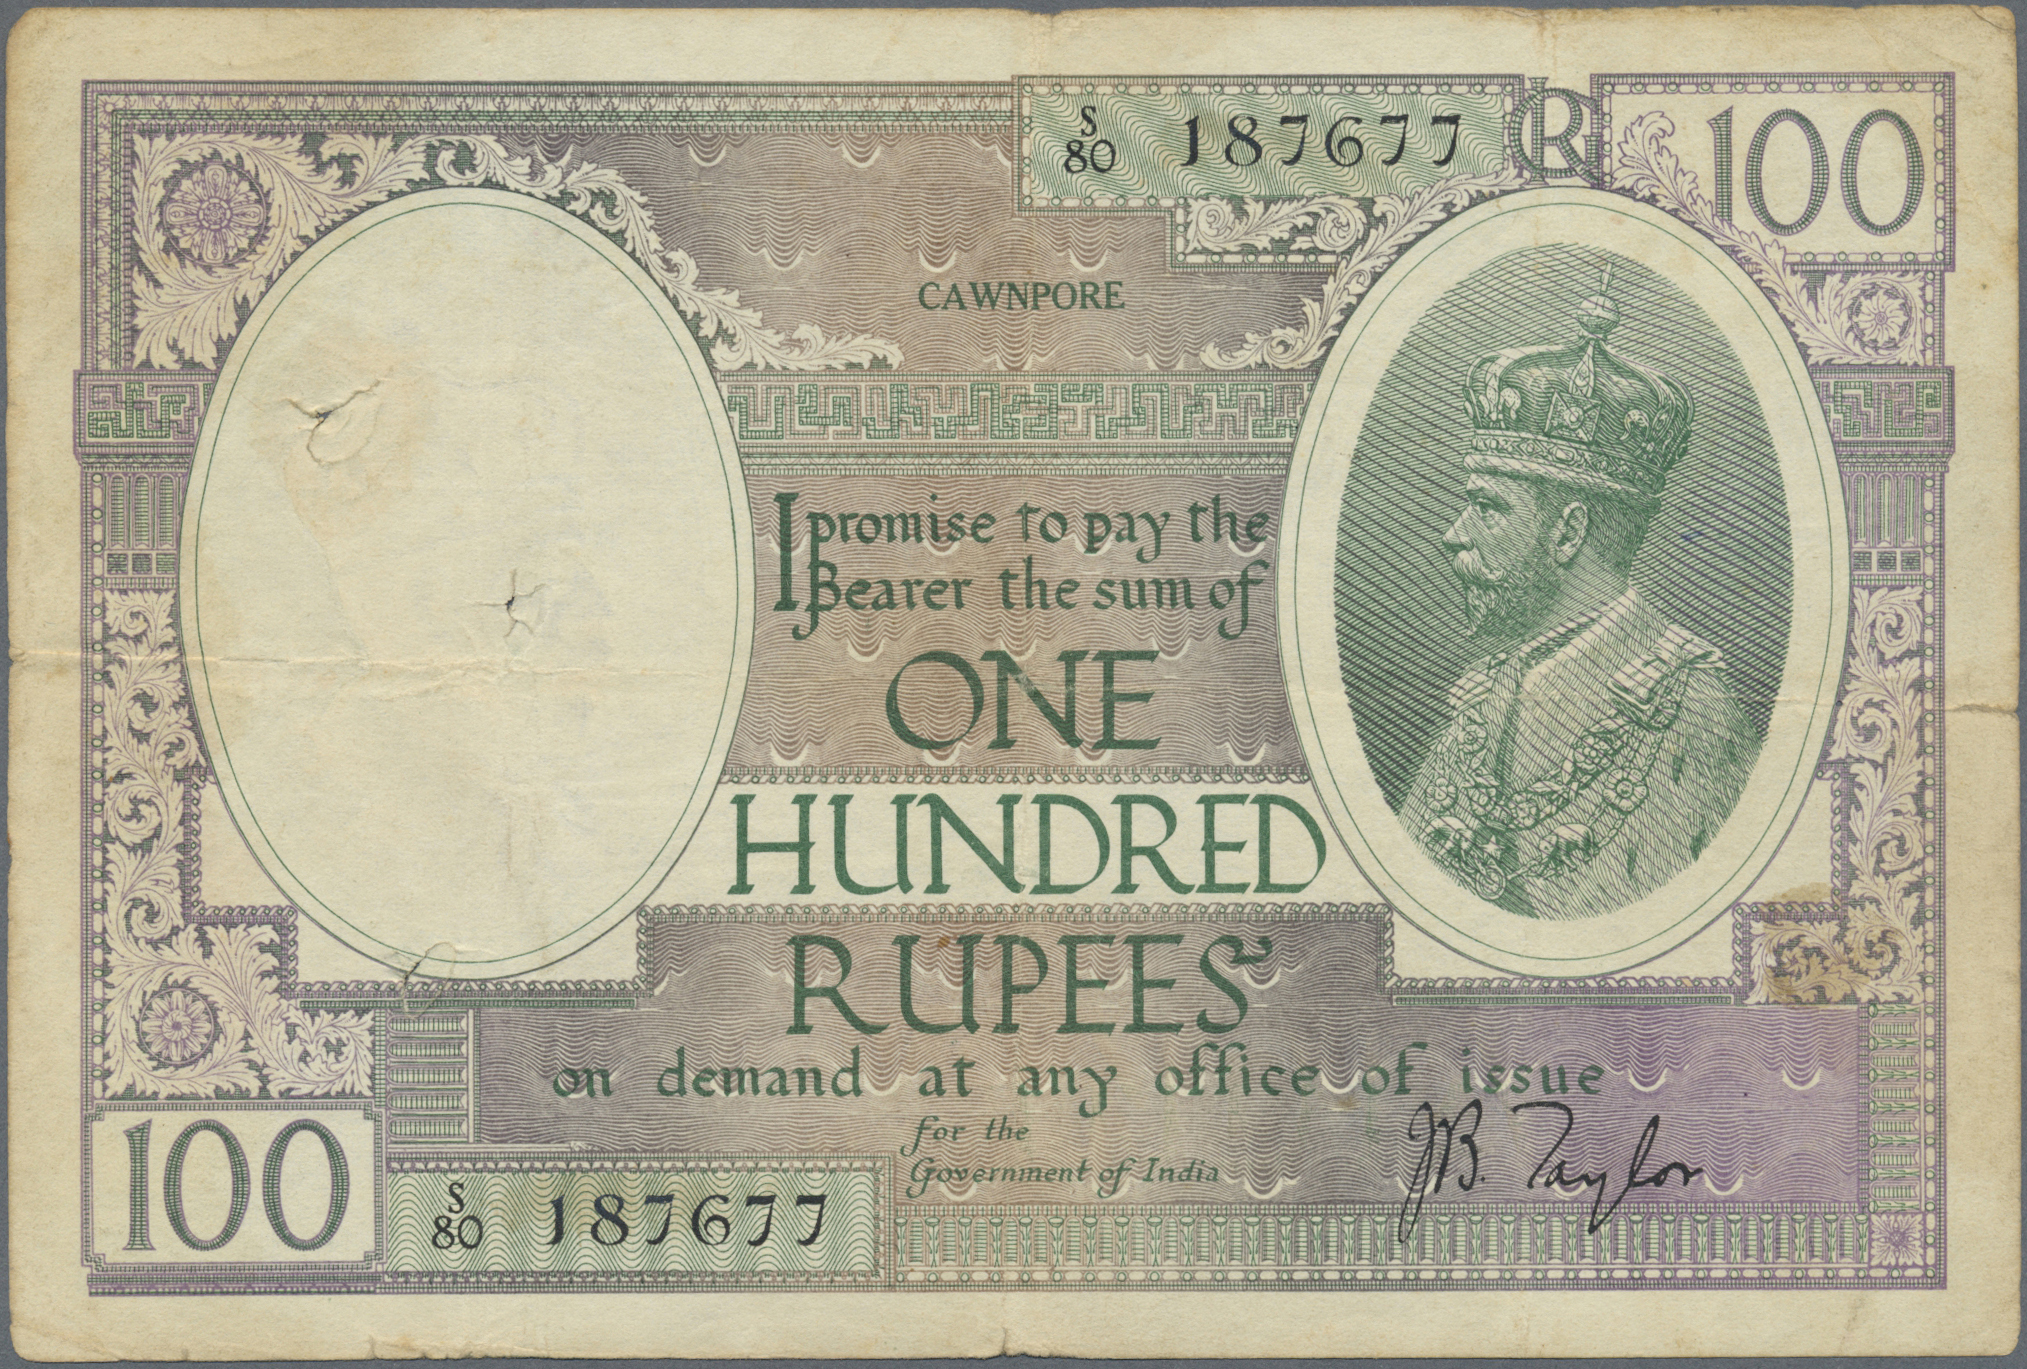 Lot 824 - India / Indien | Banknoten  -  Auktionshaus Christoph Gärtner GmbH & Co. KG Banknotes Worldwide Auction #39 Day 1